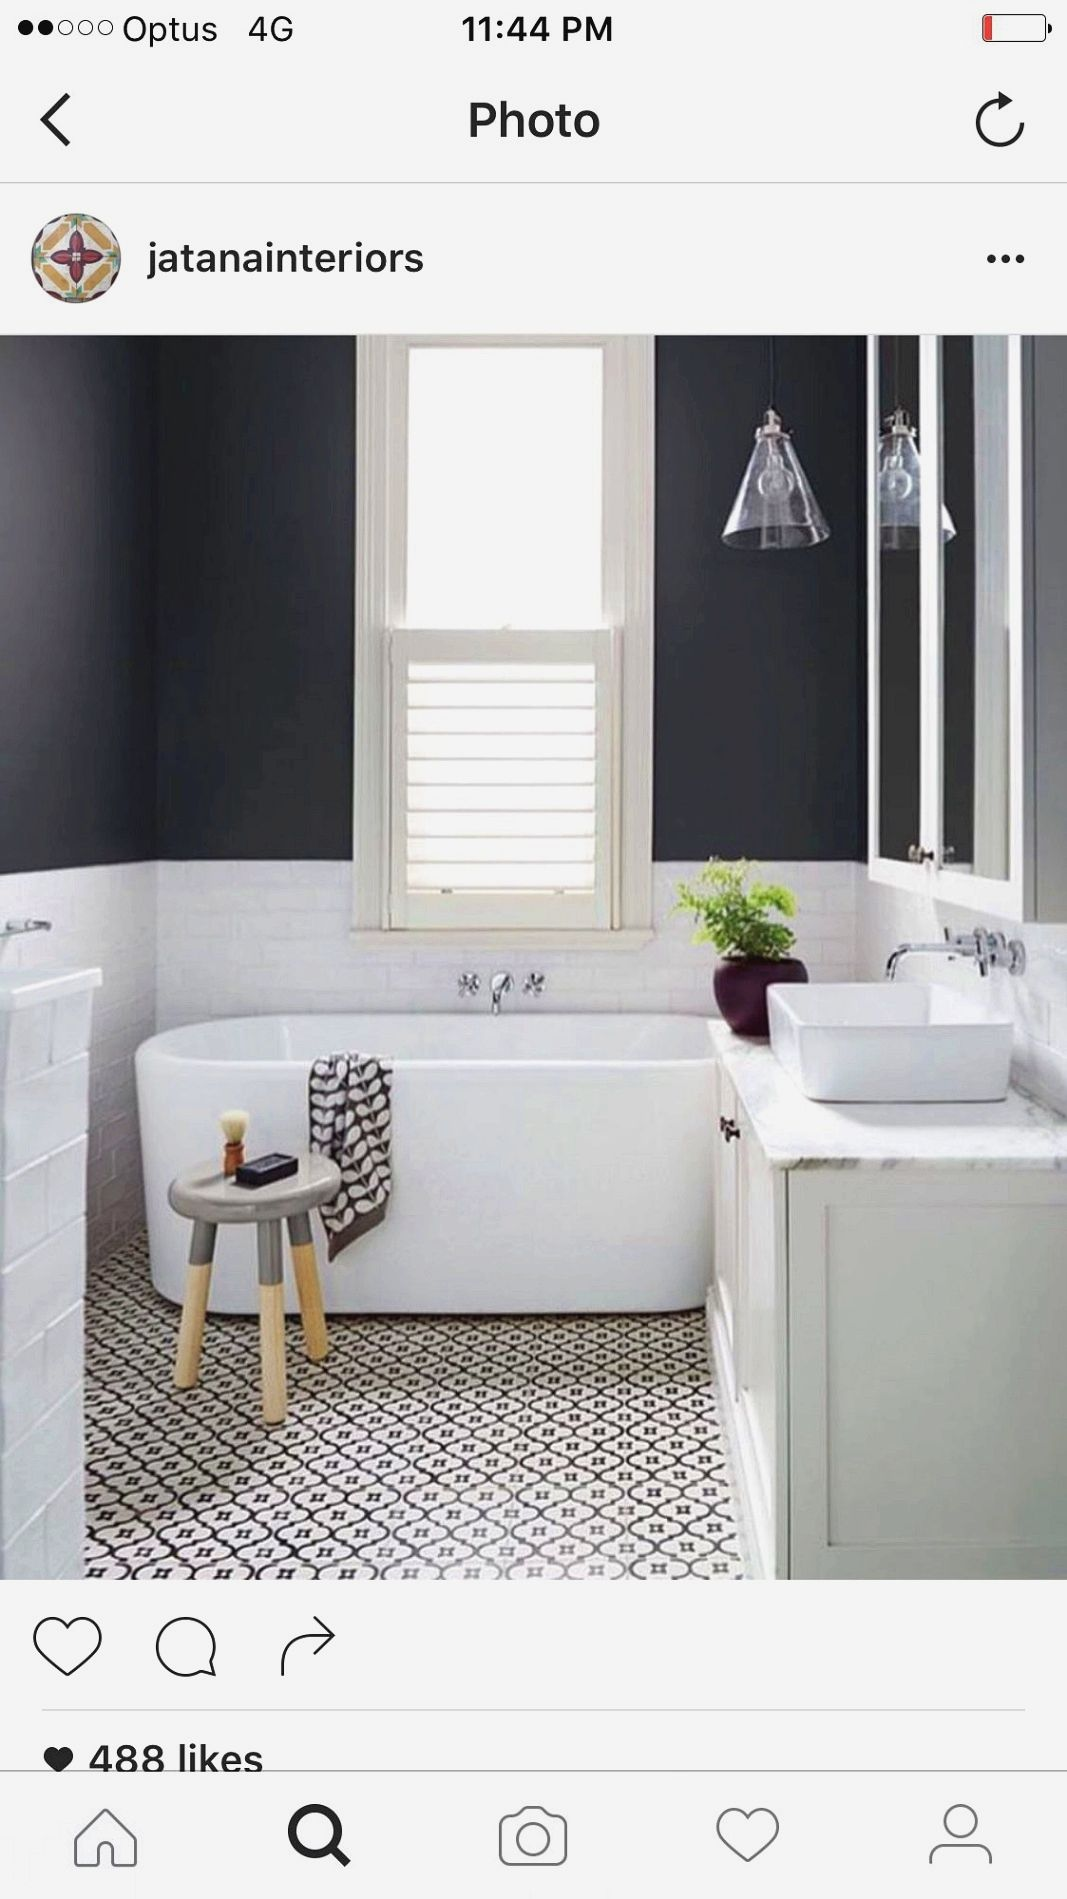 Bathroom Design And Decoration Tips: Are You Re Decorating Your Bathroom?  With These